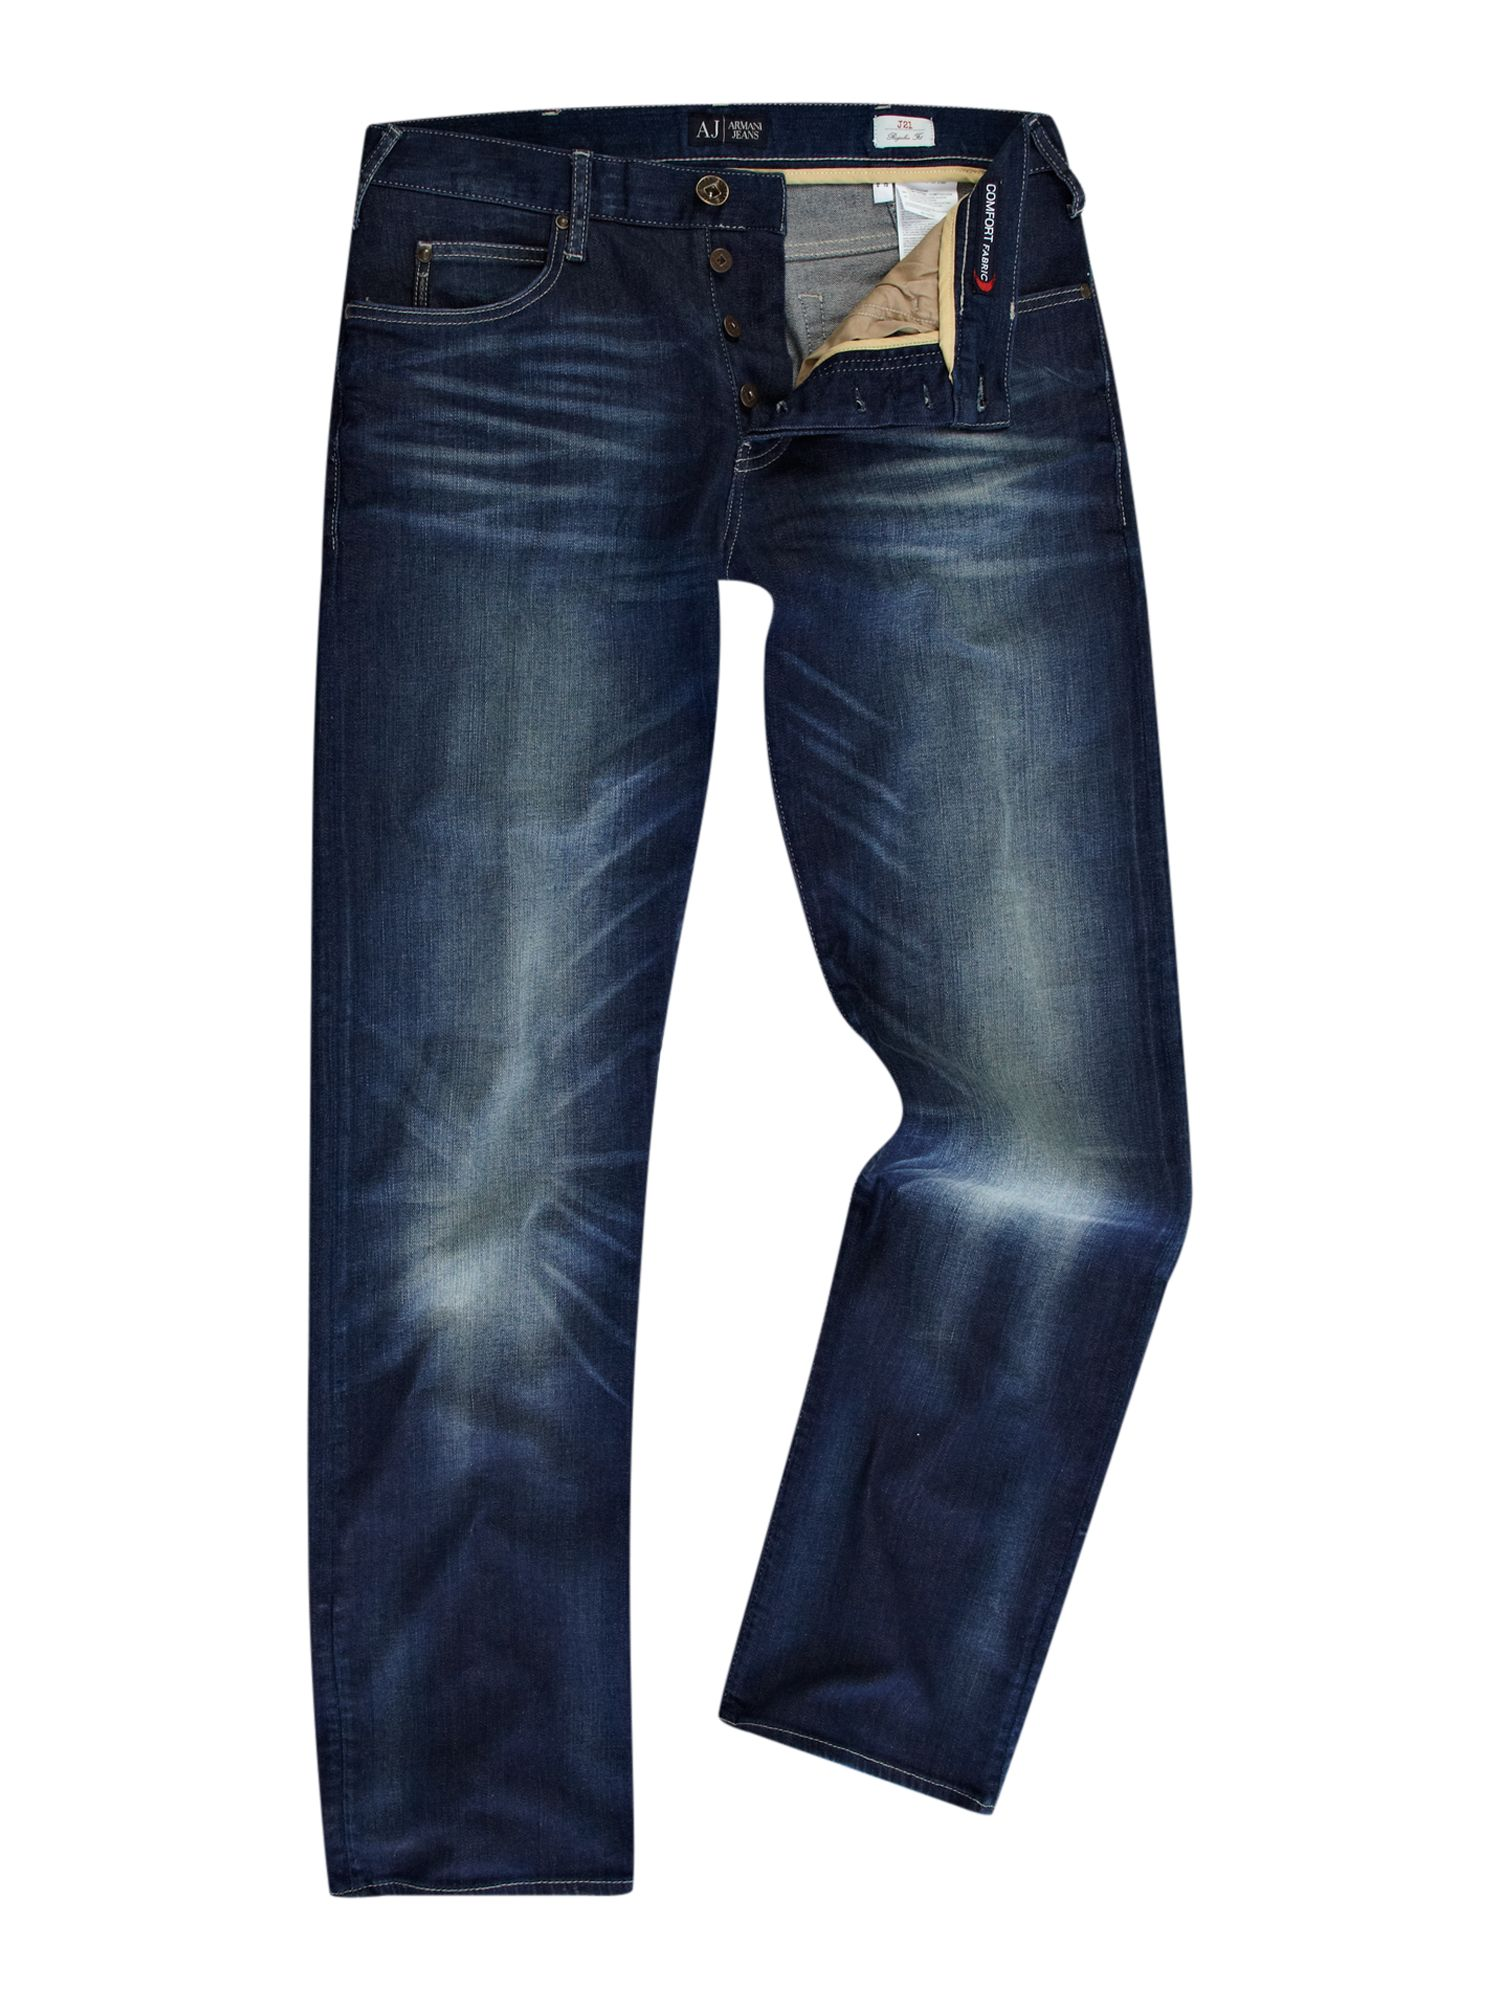 J21 regular fit heavy wash jeans